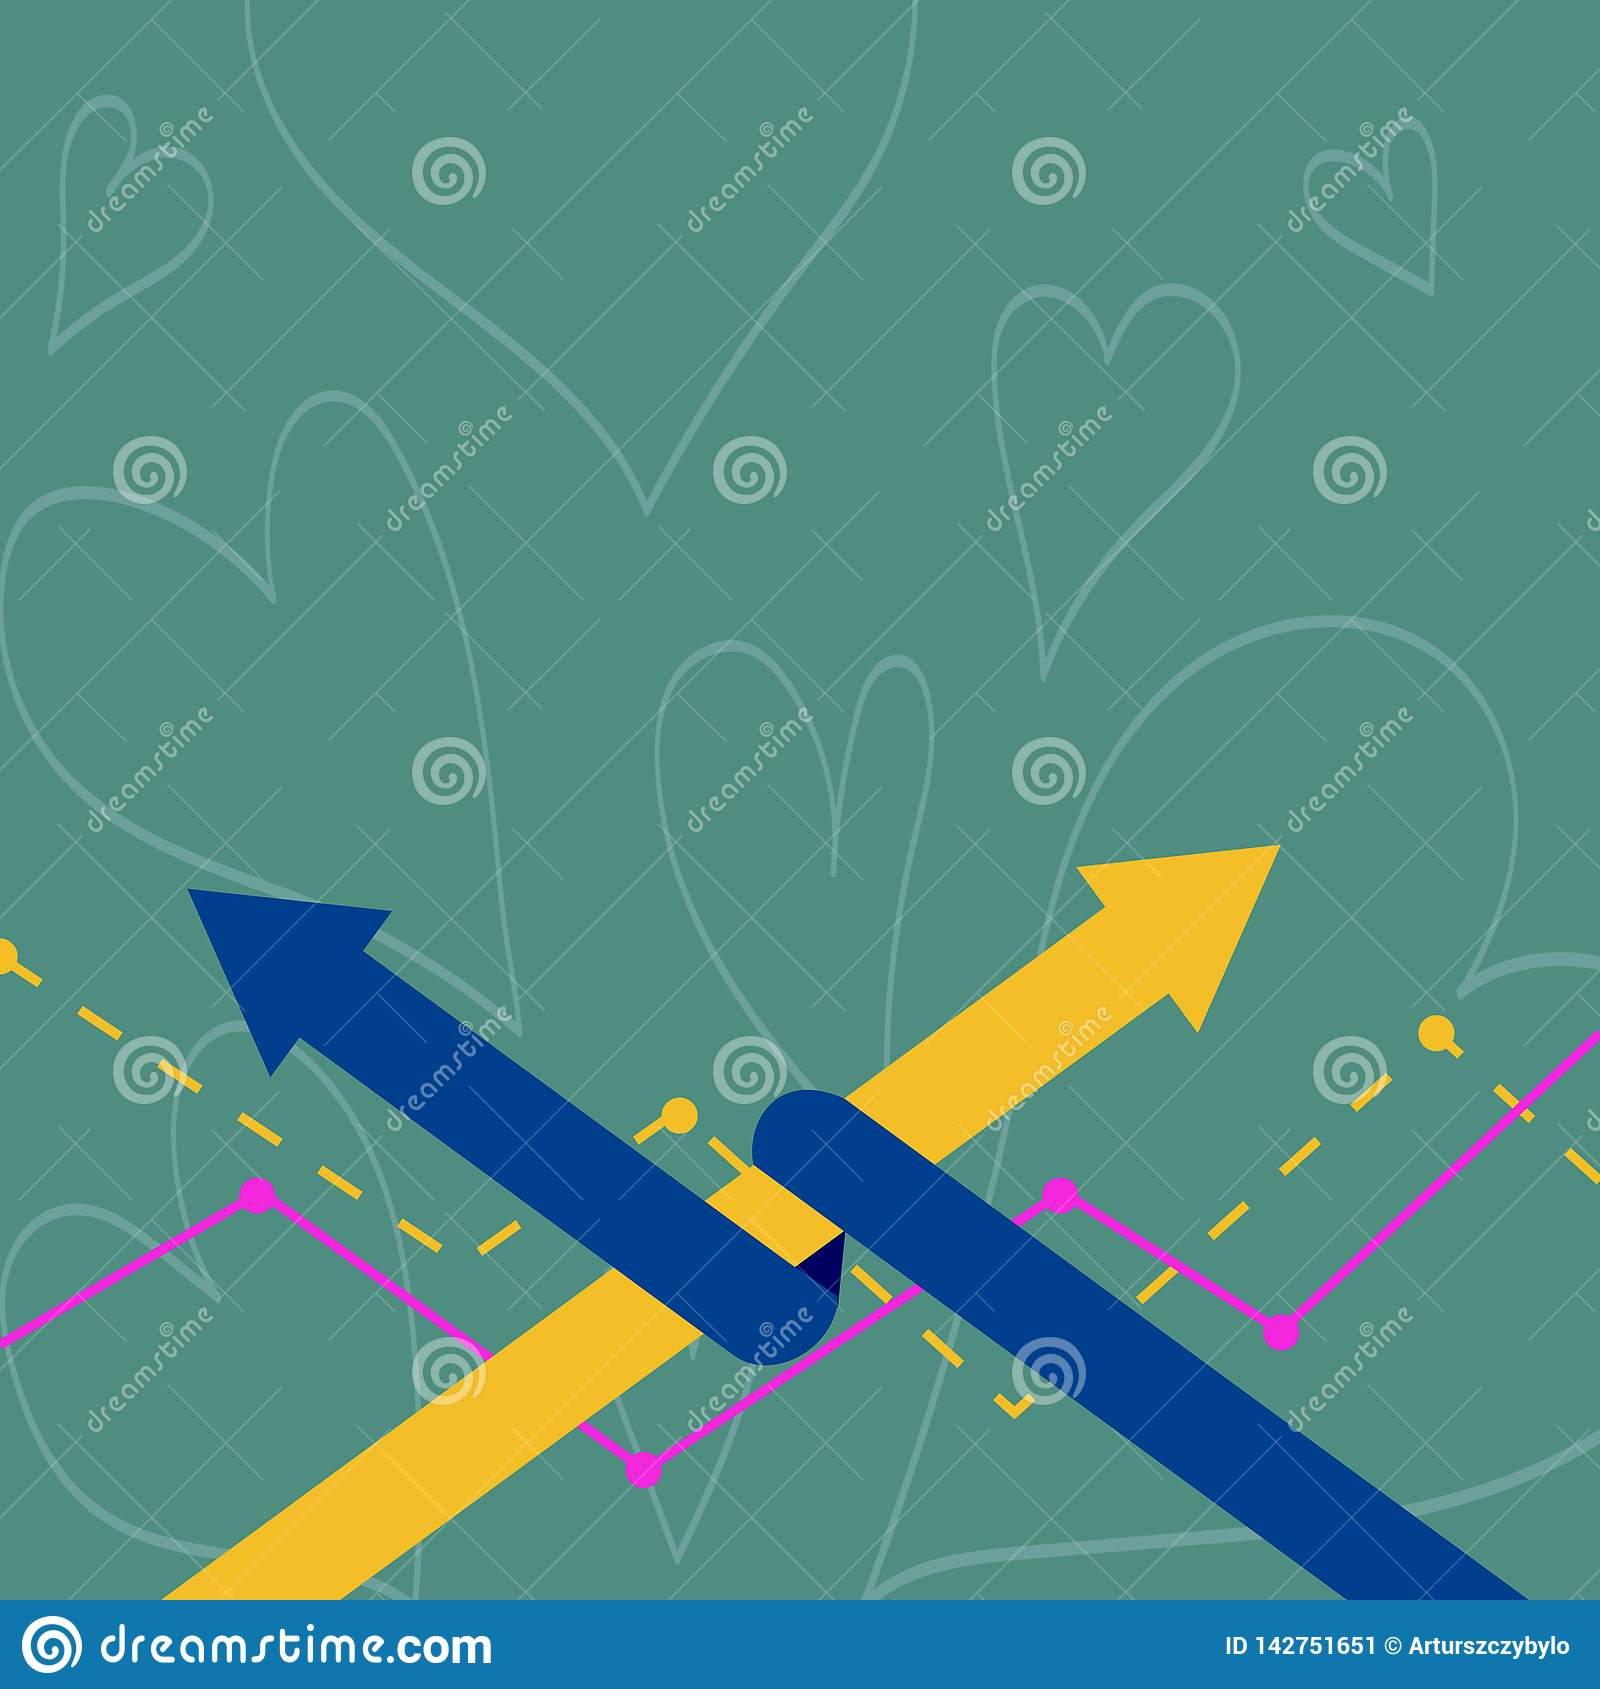 Two Colorful Arrows where One is Intertwined to the other as Symbol of Partnership, Collaboration, Agreement or